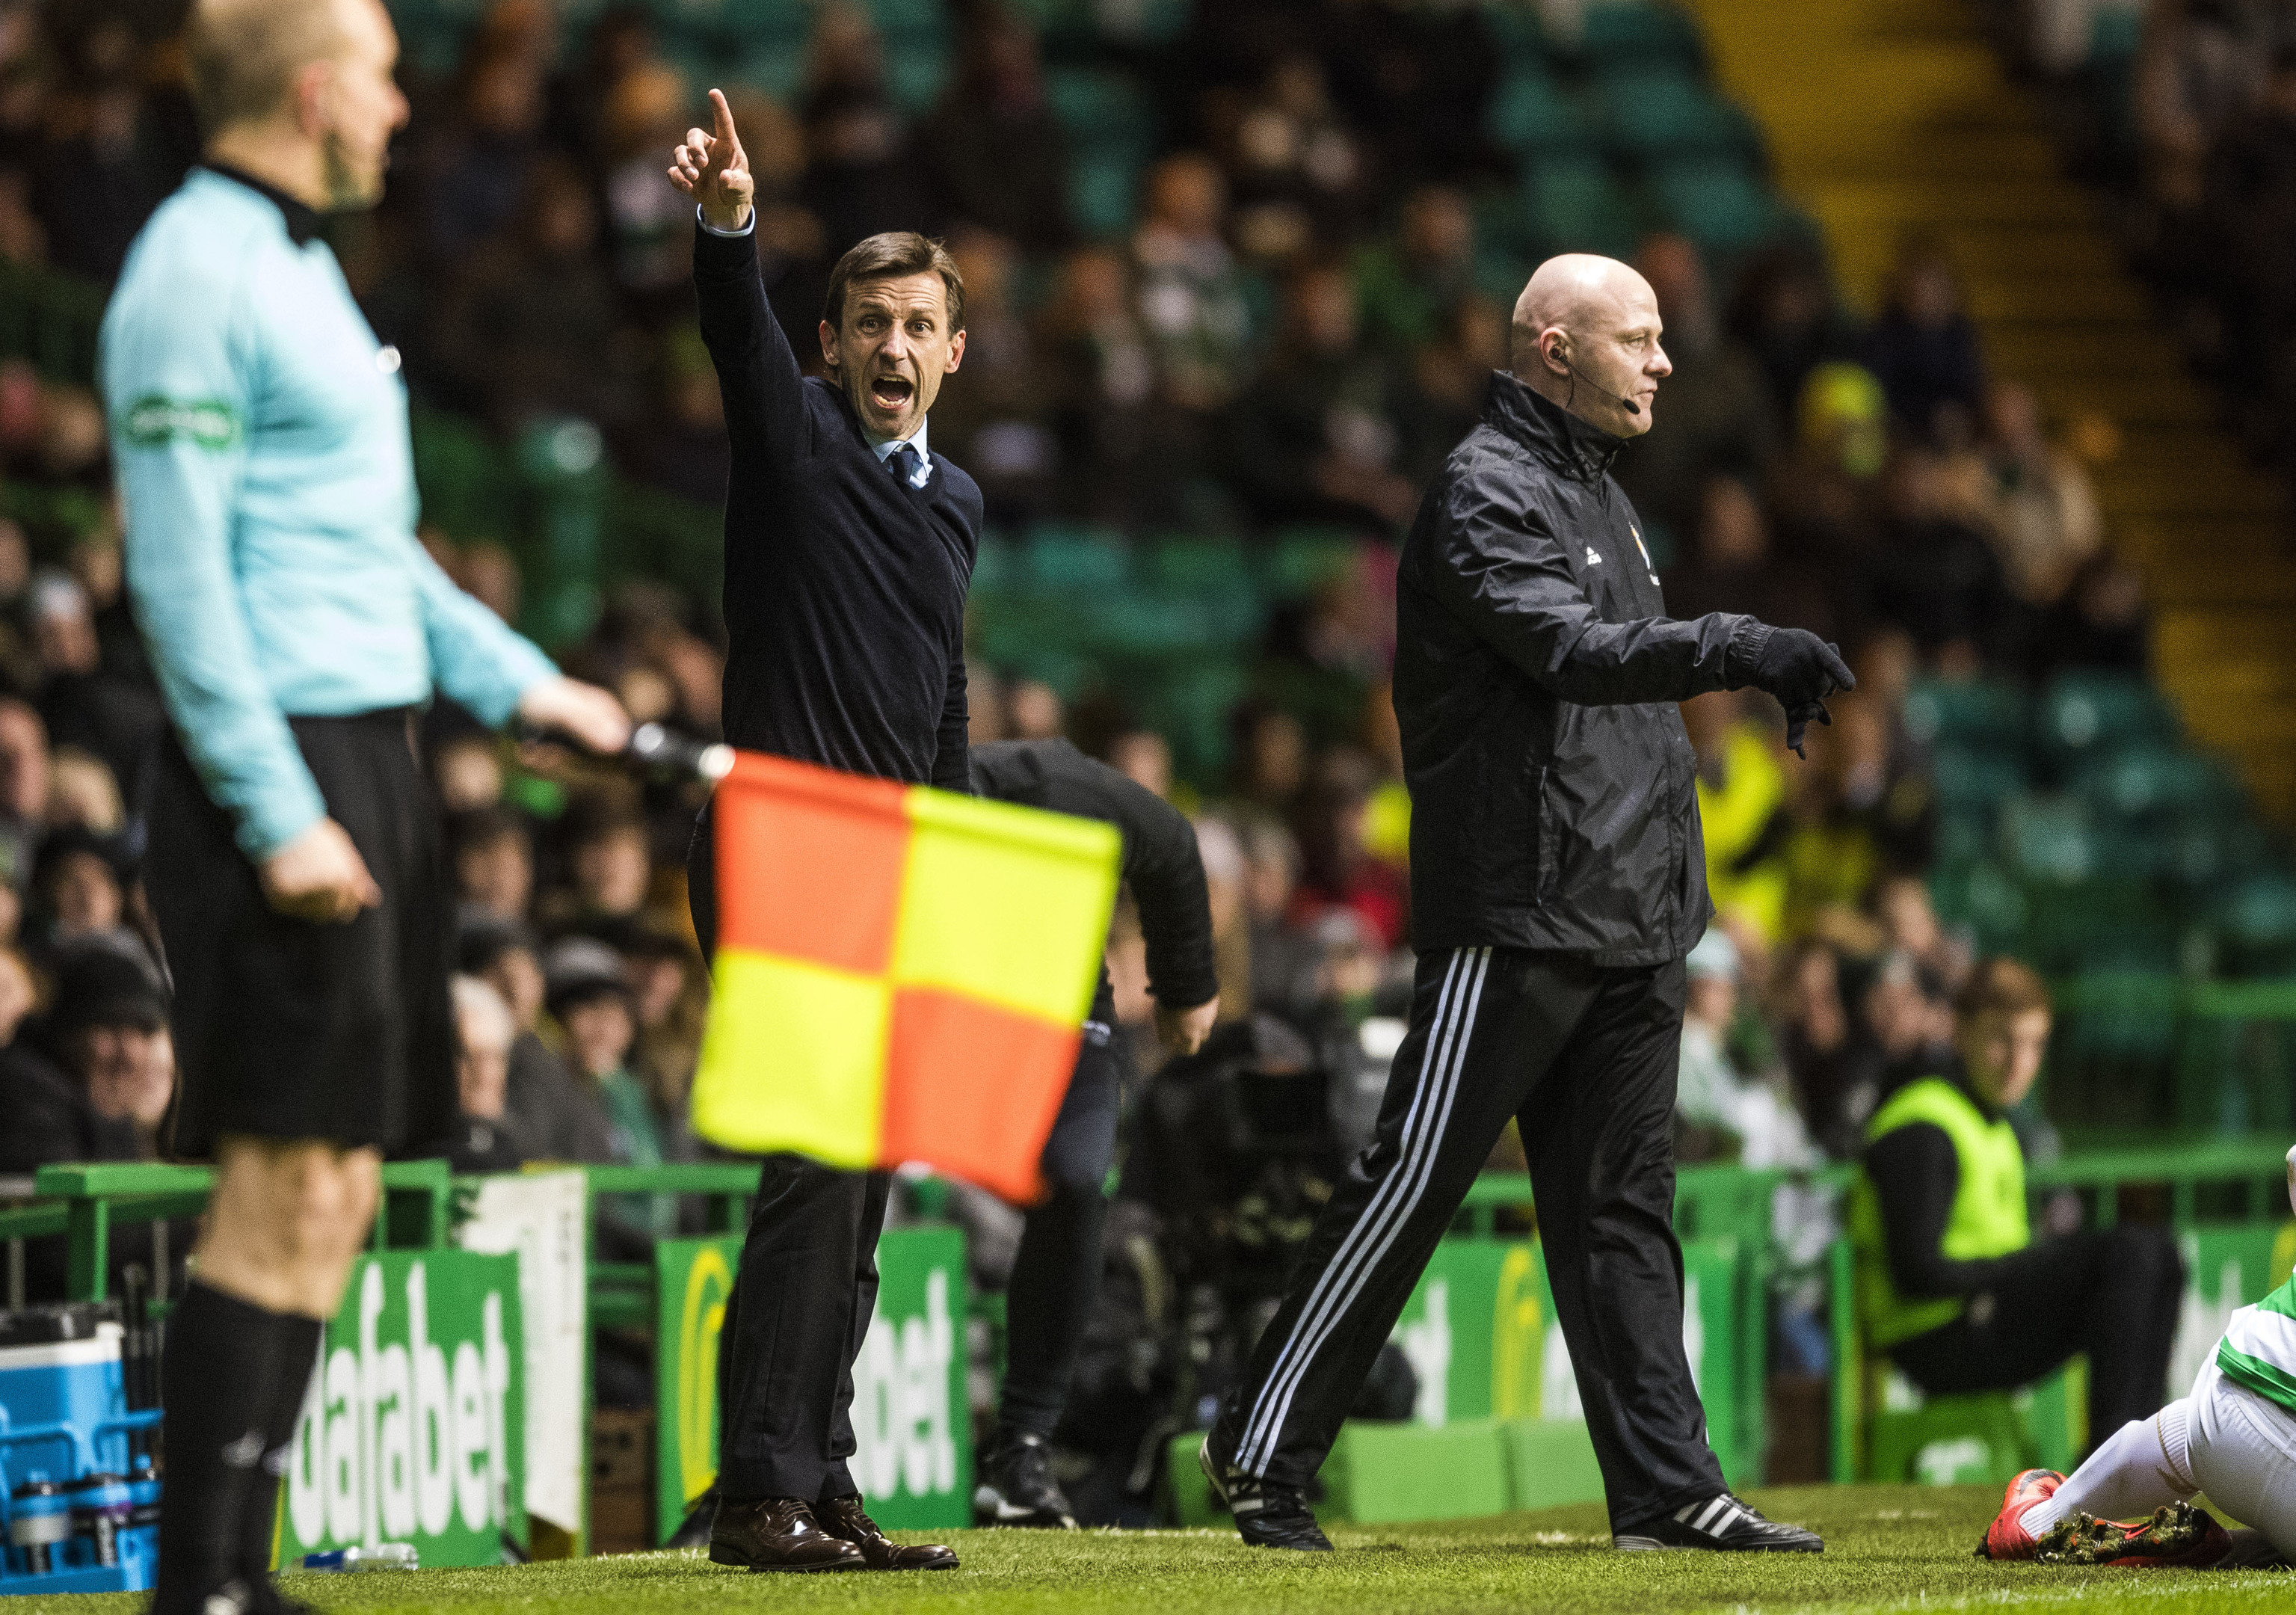 Dundee manager Neil McCann on the touchline at Celtic Park.